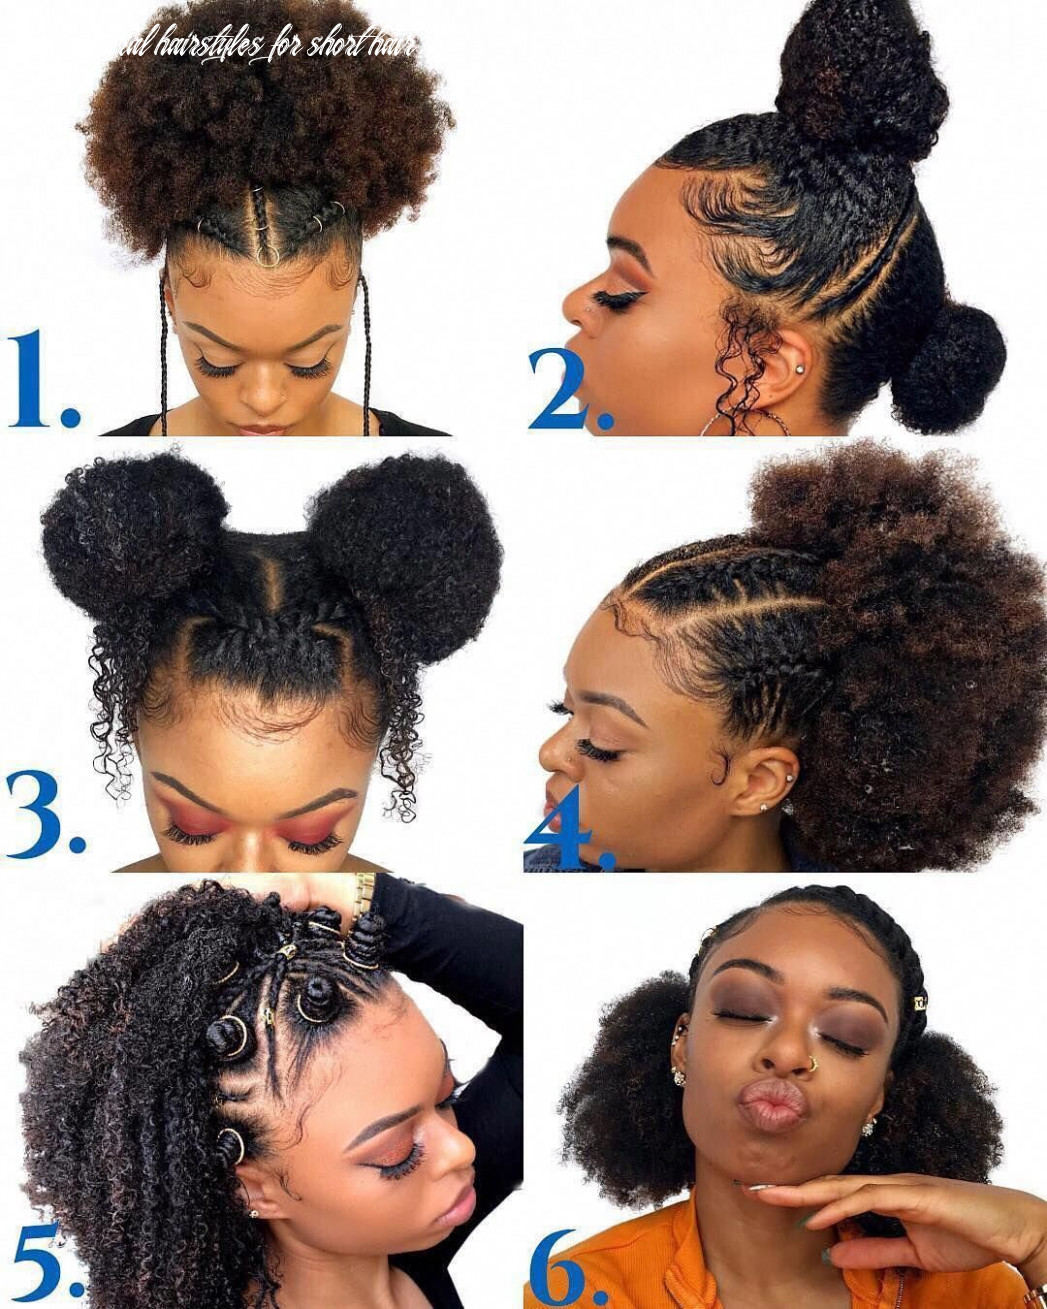 This natural hairstyles for short hair truly are trendy